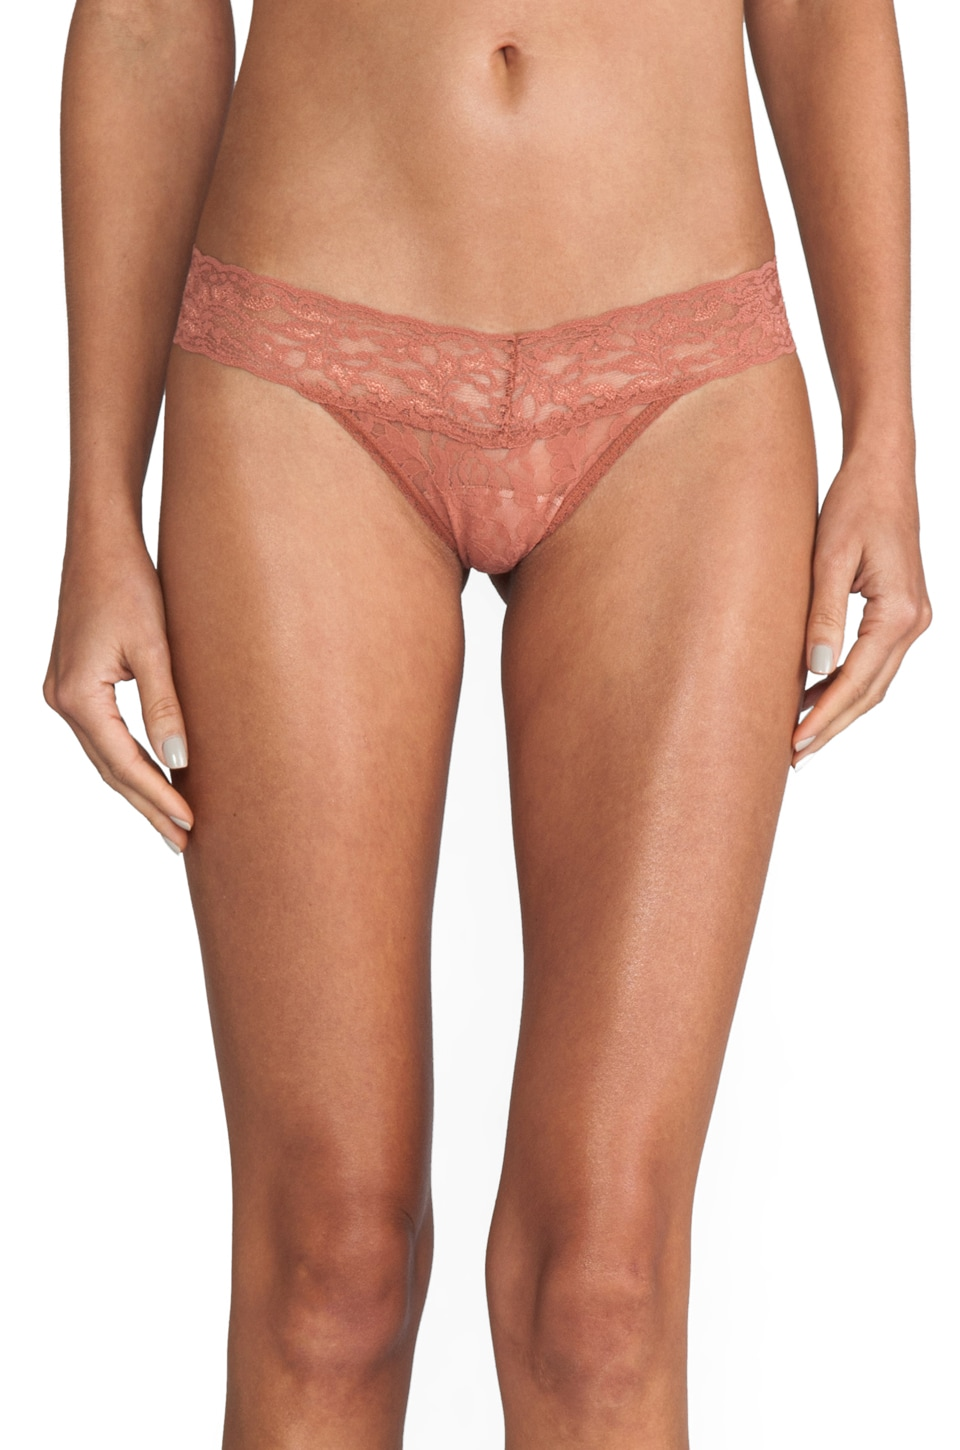 Hanky Panky Low Rise Thong in Rose Gold